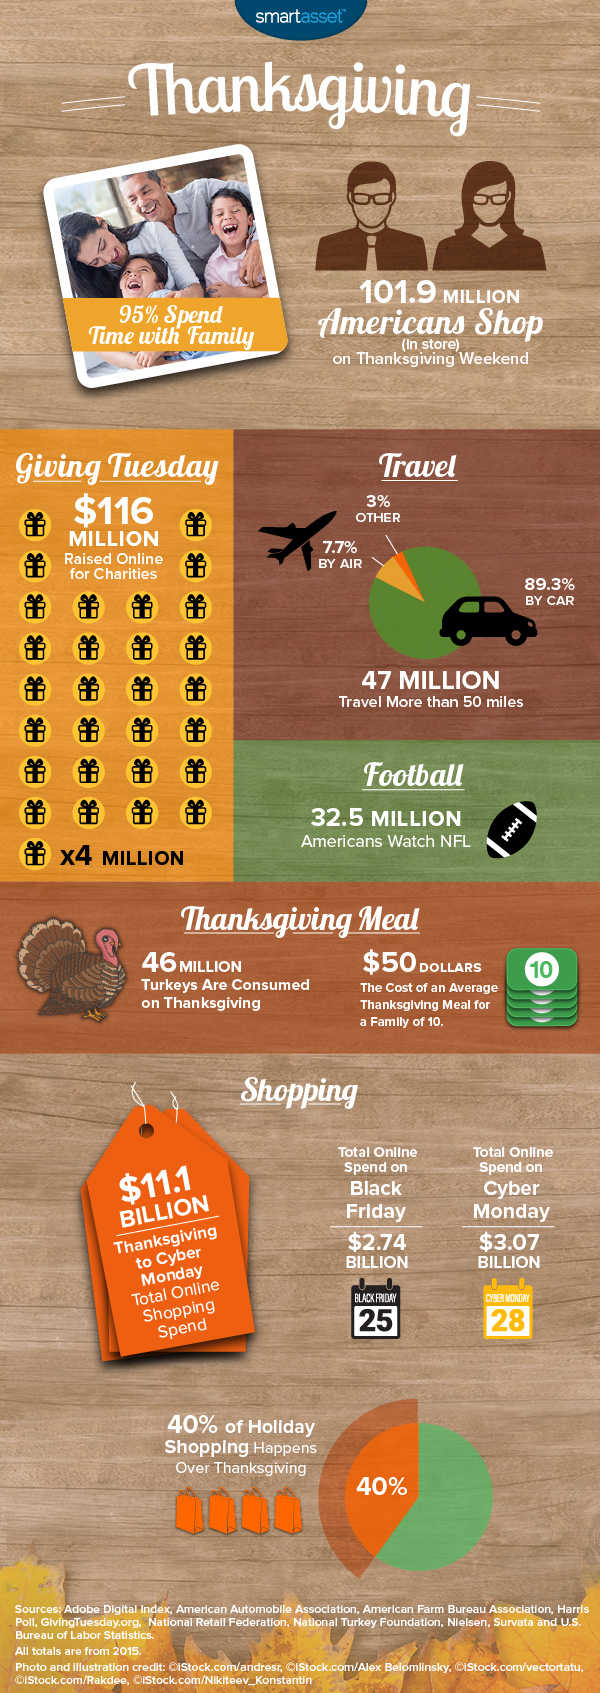 Thanksgiving by the Numbers